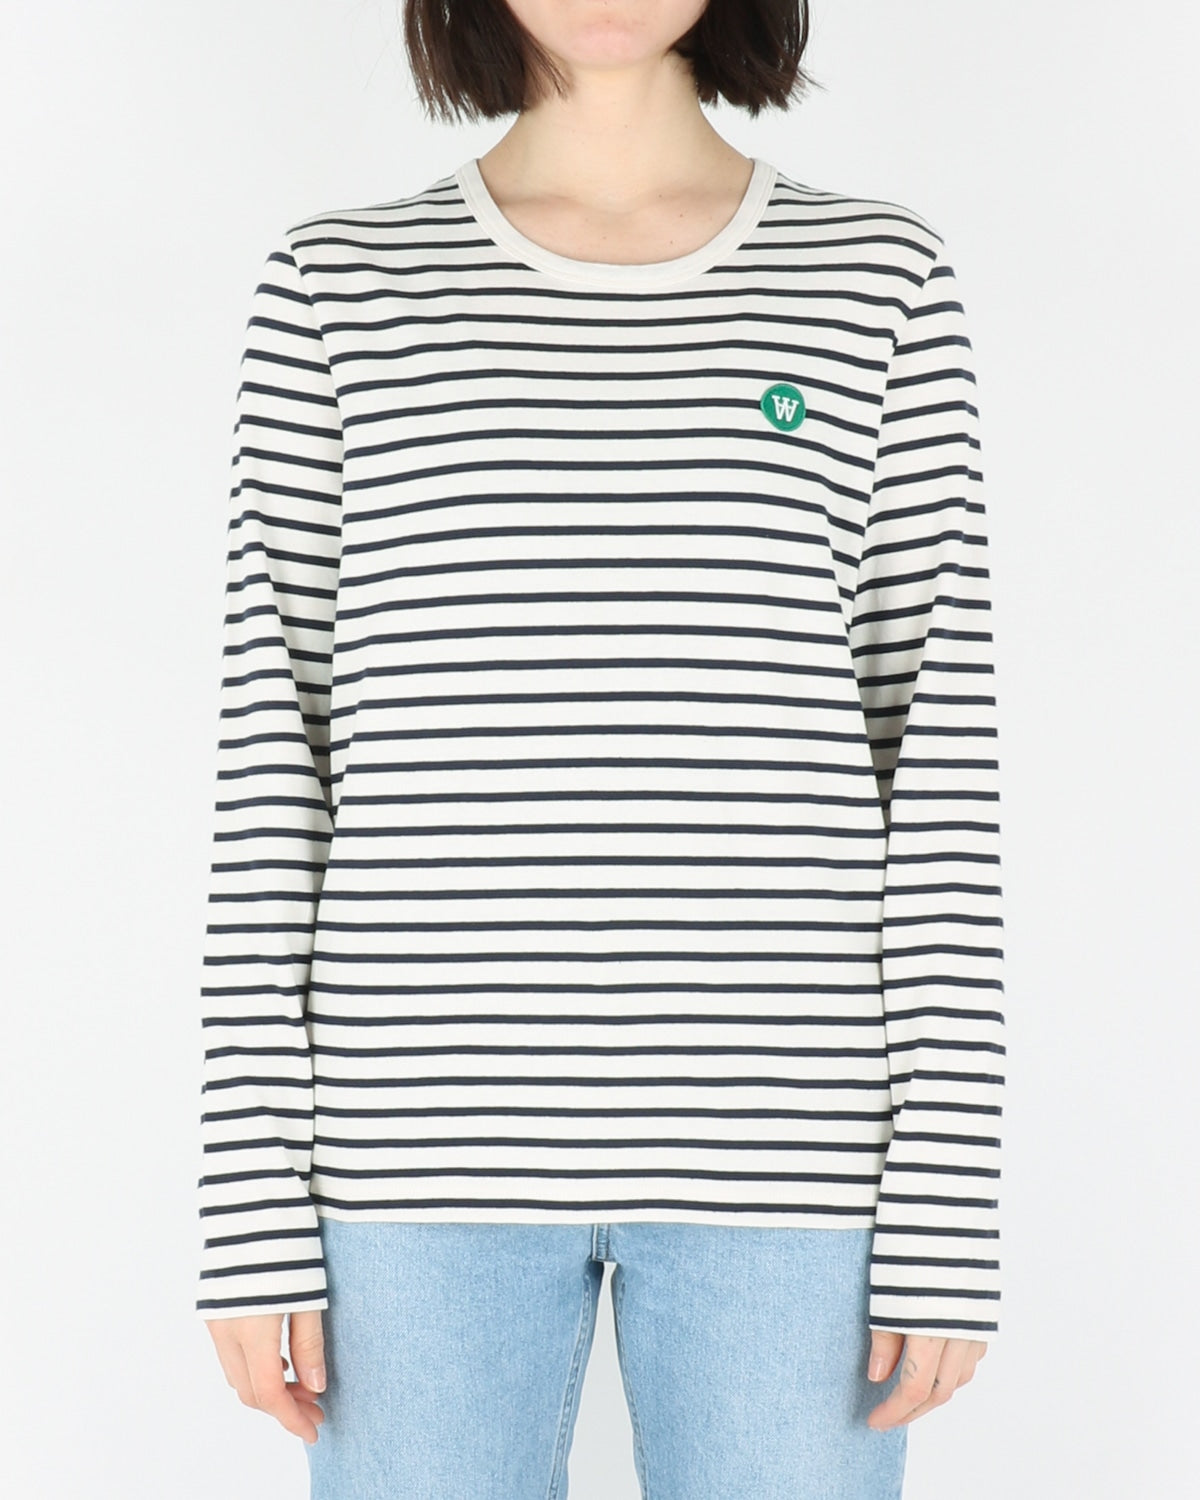 wood wood_moa longsleeve_offwhite navy stripes_view_1_3